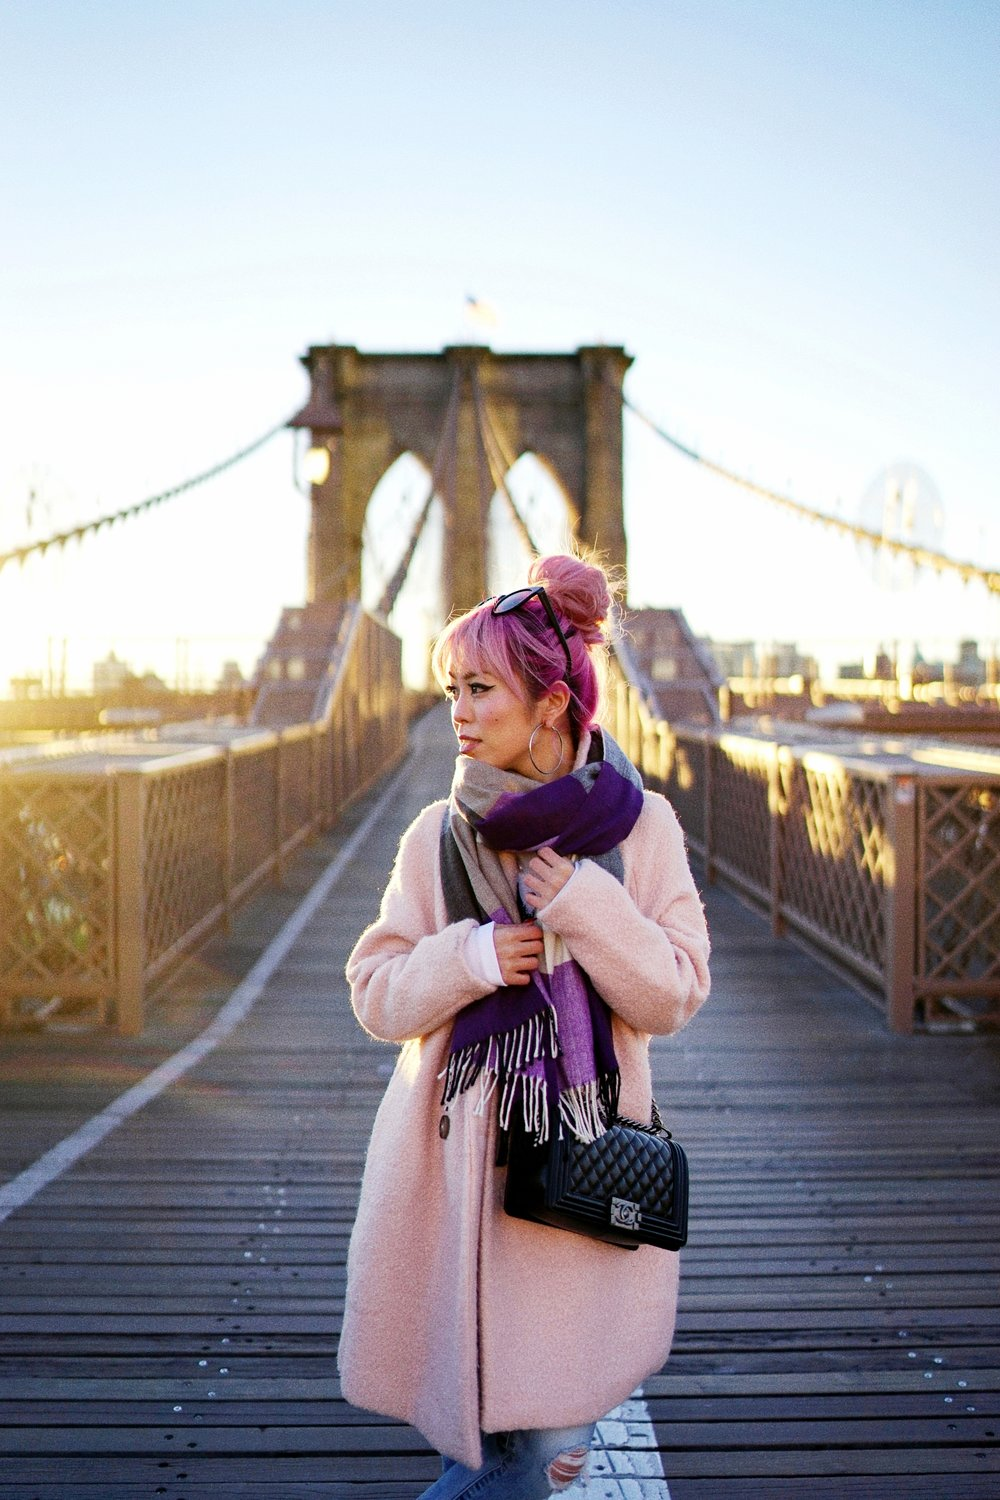 GAP Scarf-Zara pink coat-MOUSSY- frayed hem jeans- CHANEL Lambskin Quilted Medium Boy Flap Black-Adidas Superstar Shoes-Urban Outfitters Sunglasses-Aika's Love Closet-Sealtle fashion style blogger from japan-pink hair-brooklyn bridge-new york-city 15